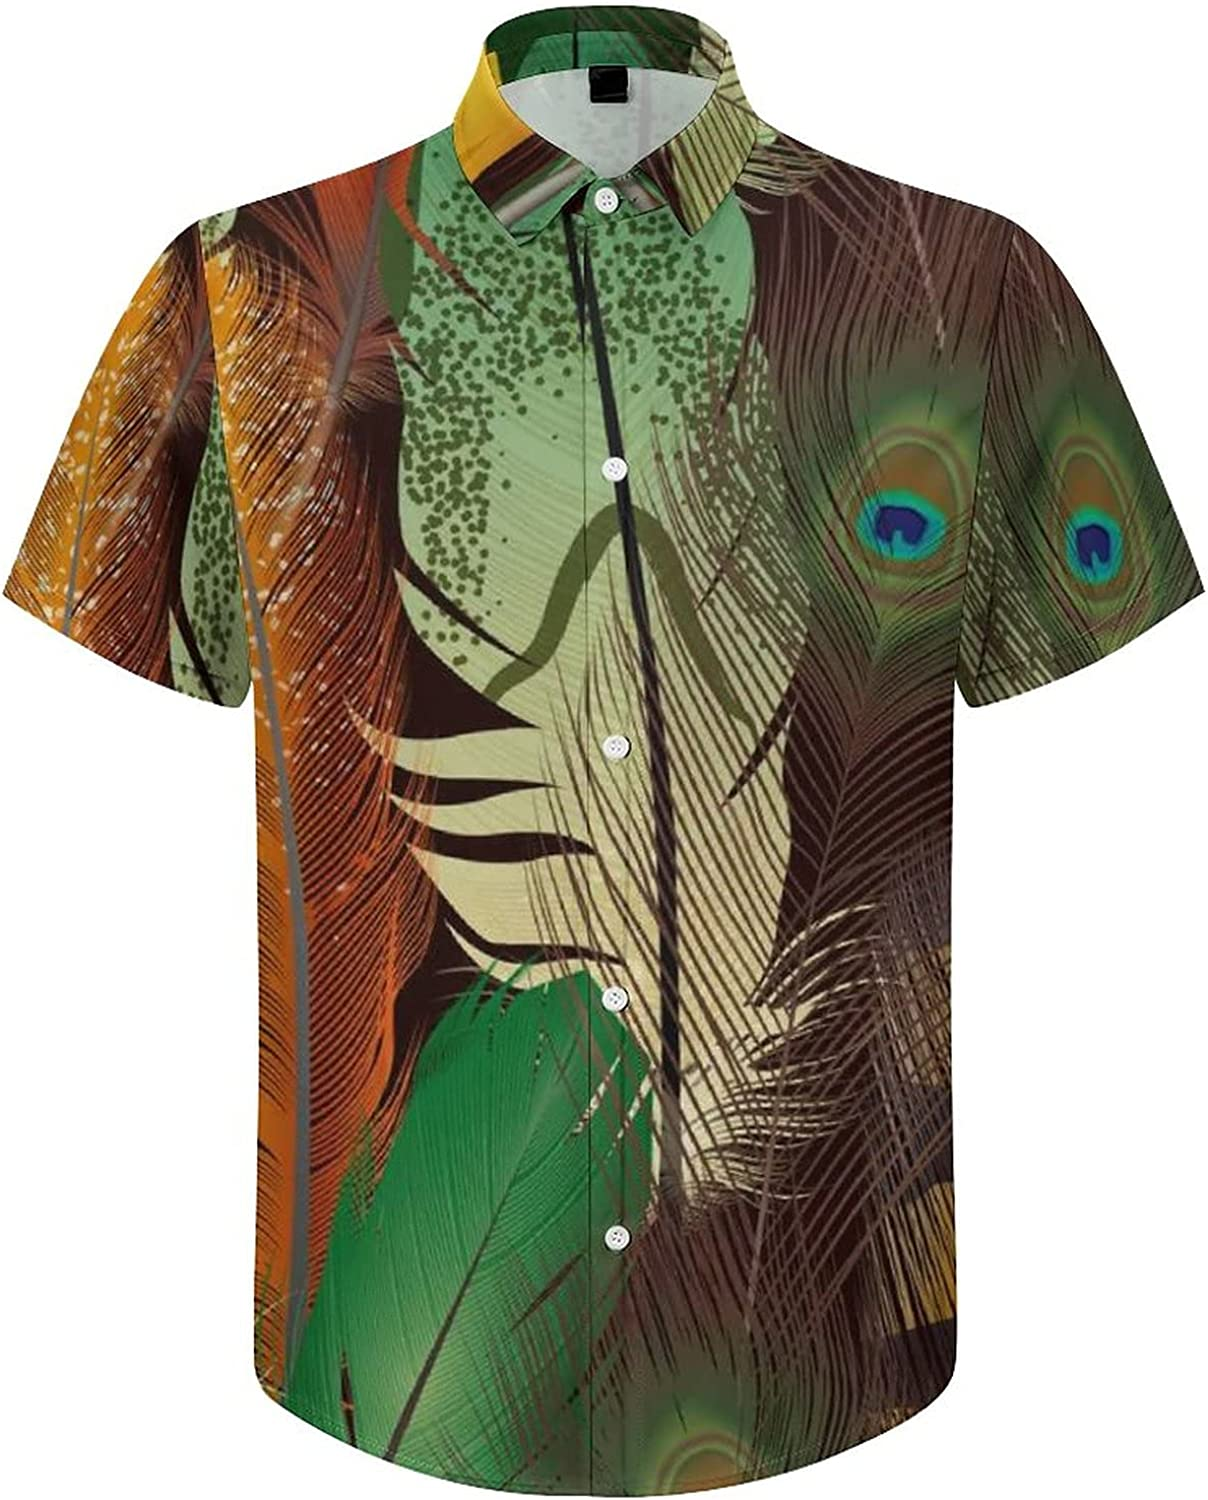 Mens Button Down Shirt Realistic Pattern Feathers Casual Summer Beach Shirts Tops